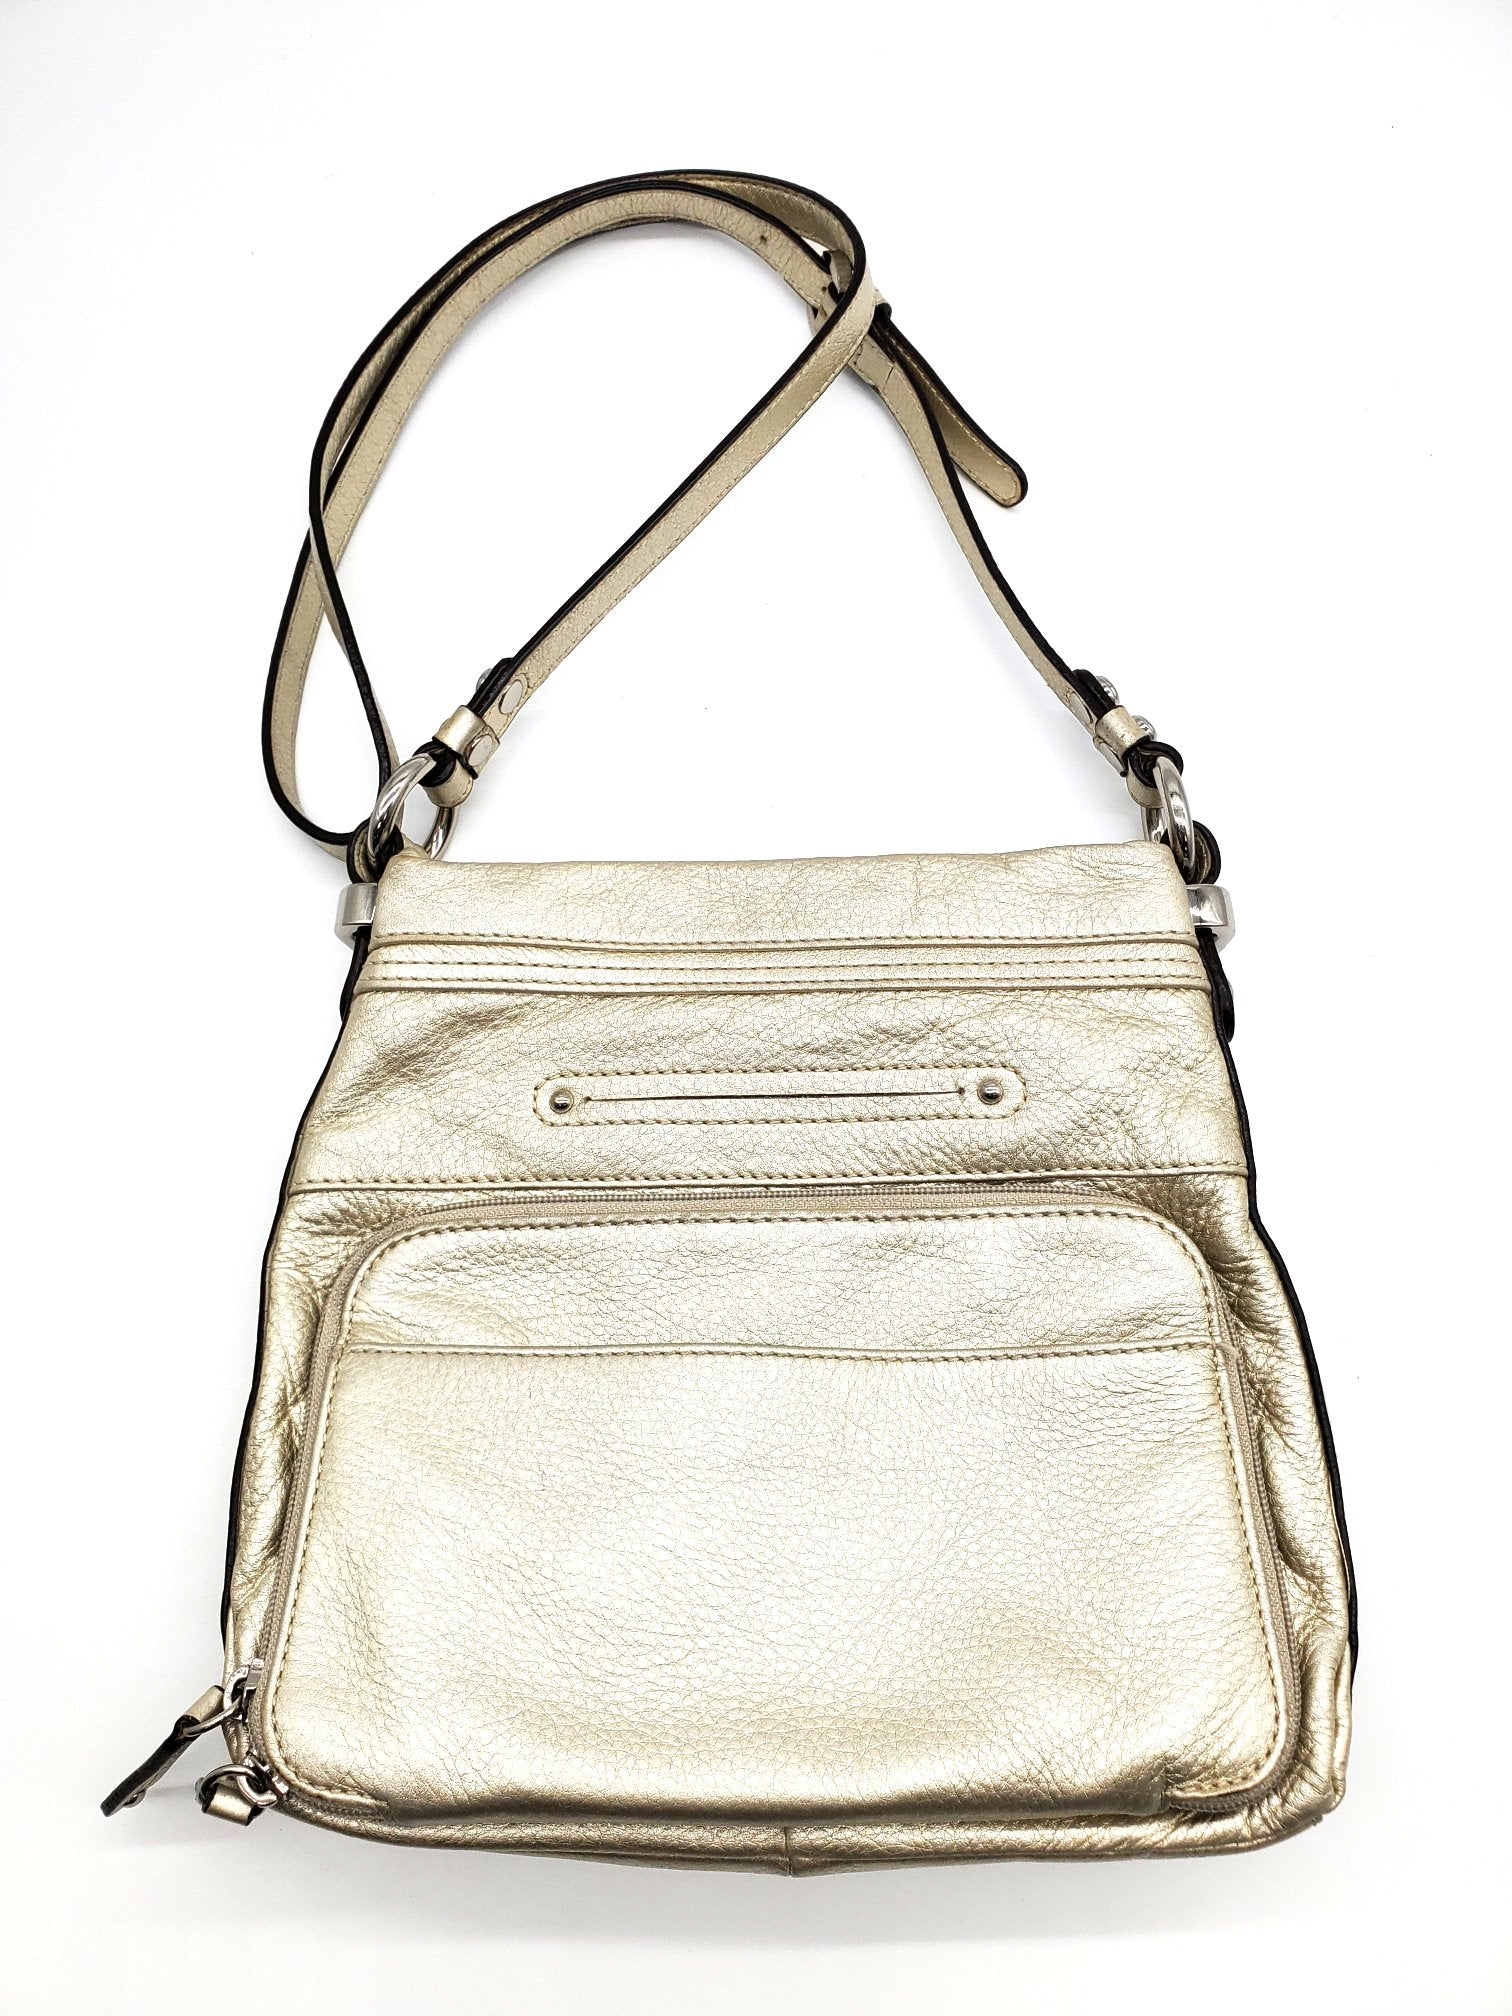 Primary Photo - BRAND: B MAKOWSKY <BR>STYLE: HANDBAG <BR>COLOR: GOLD <BR>SIZE: SMALL <BR>SKU: 262-26298-569<BR>AS IS <BR>